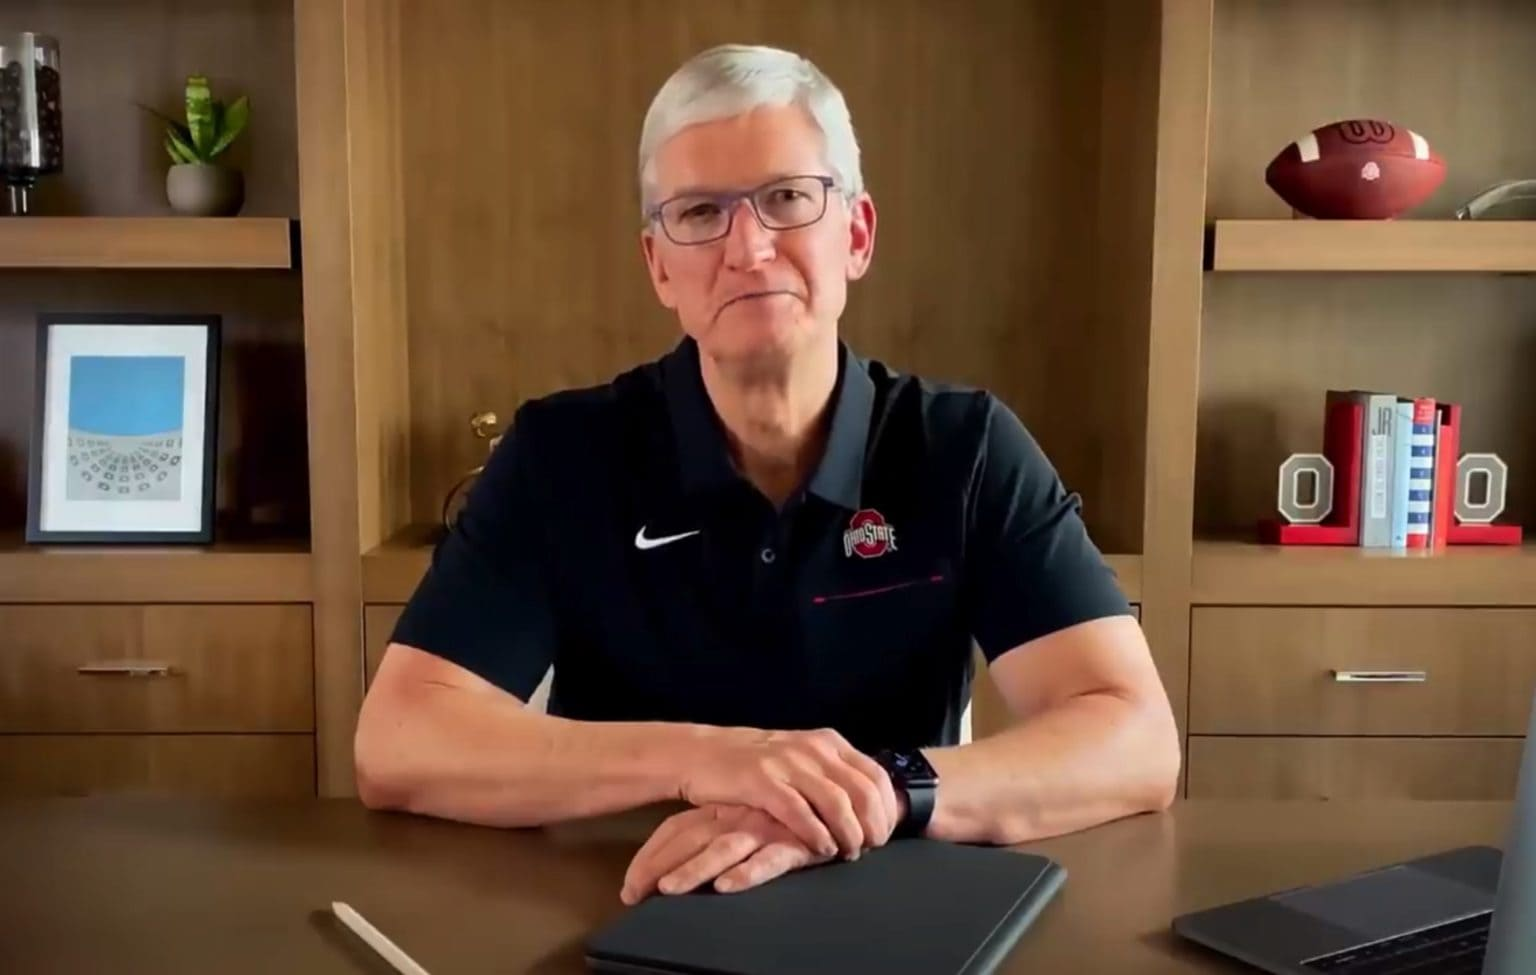 Tim Cook called for Ohio State University grads to embrace hope in a fearful time during his virtual commencement address.